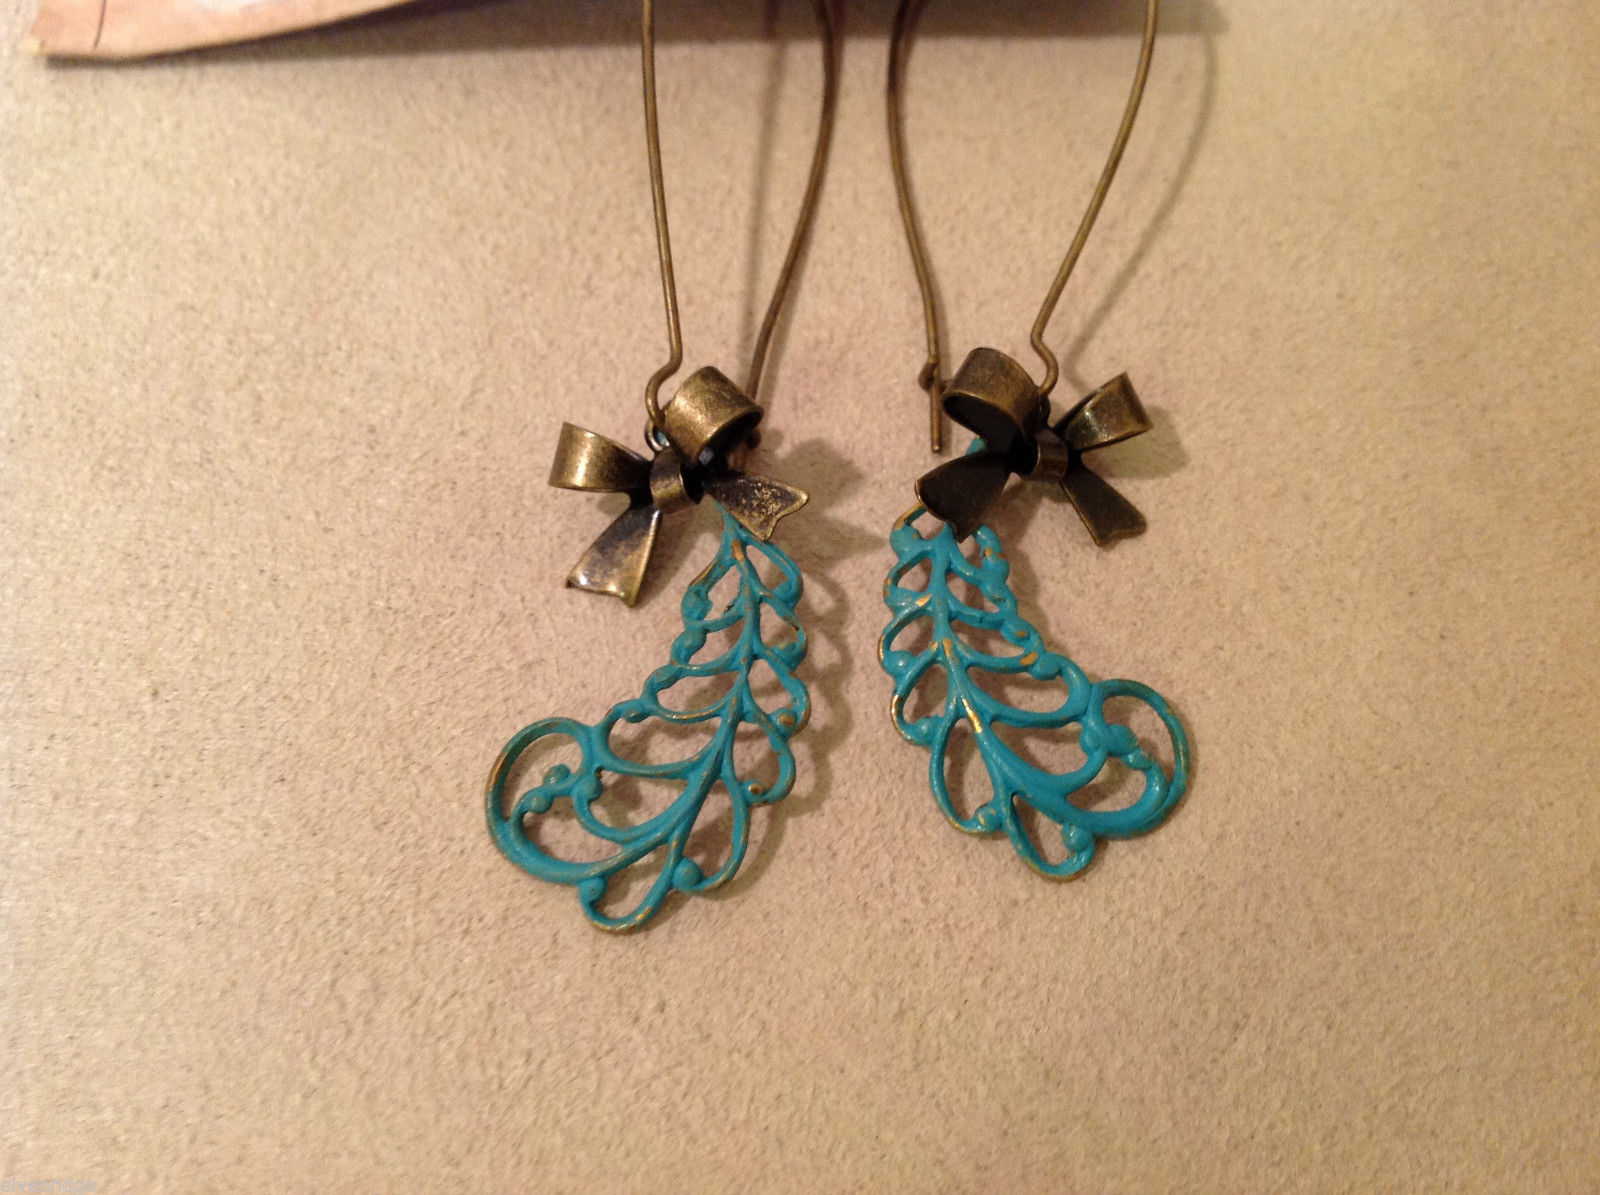 Geranium handmade limited edition turquoise color leaves dangling earrings